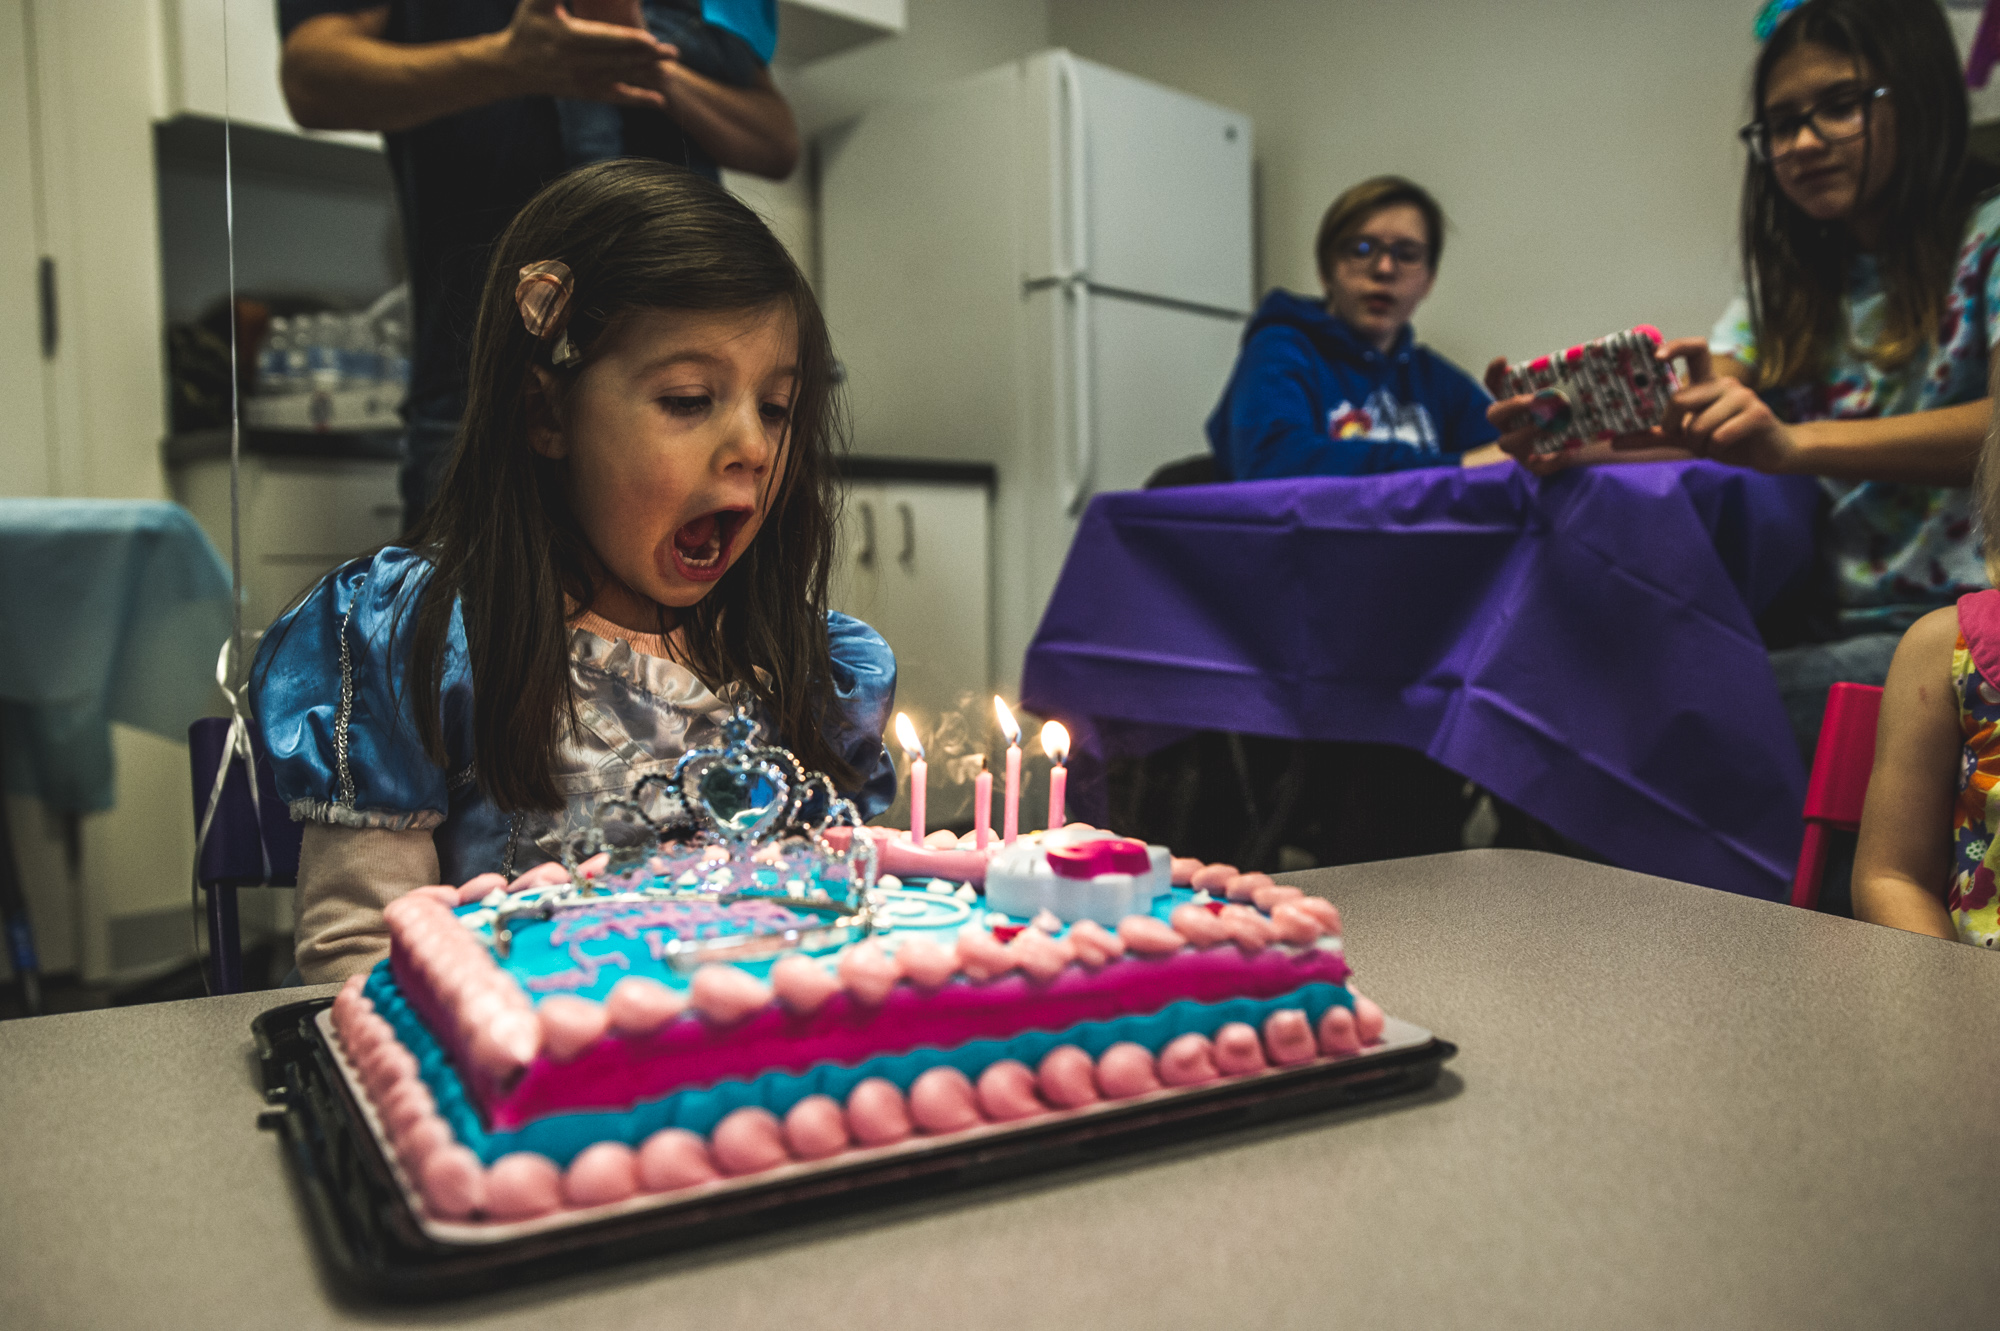 Little girl blows out four candles on her pink and blue birthday cake as she wears a princess dress at her birthday party at Family Connections kids' gym in Littleton, Colorado